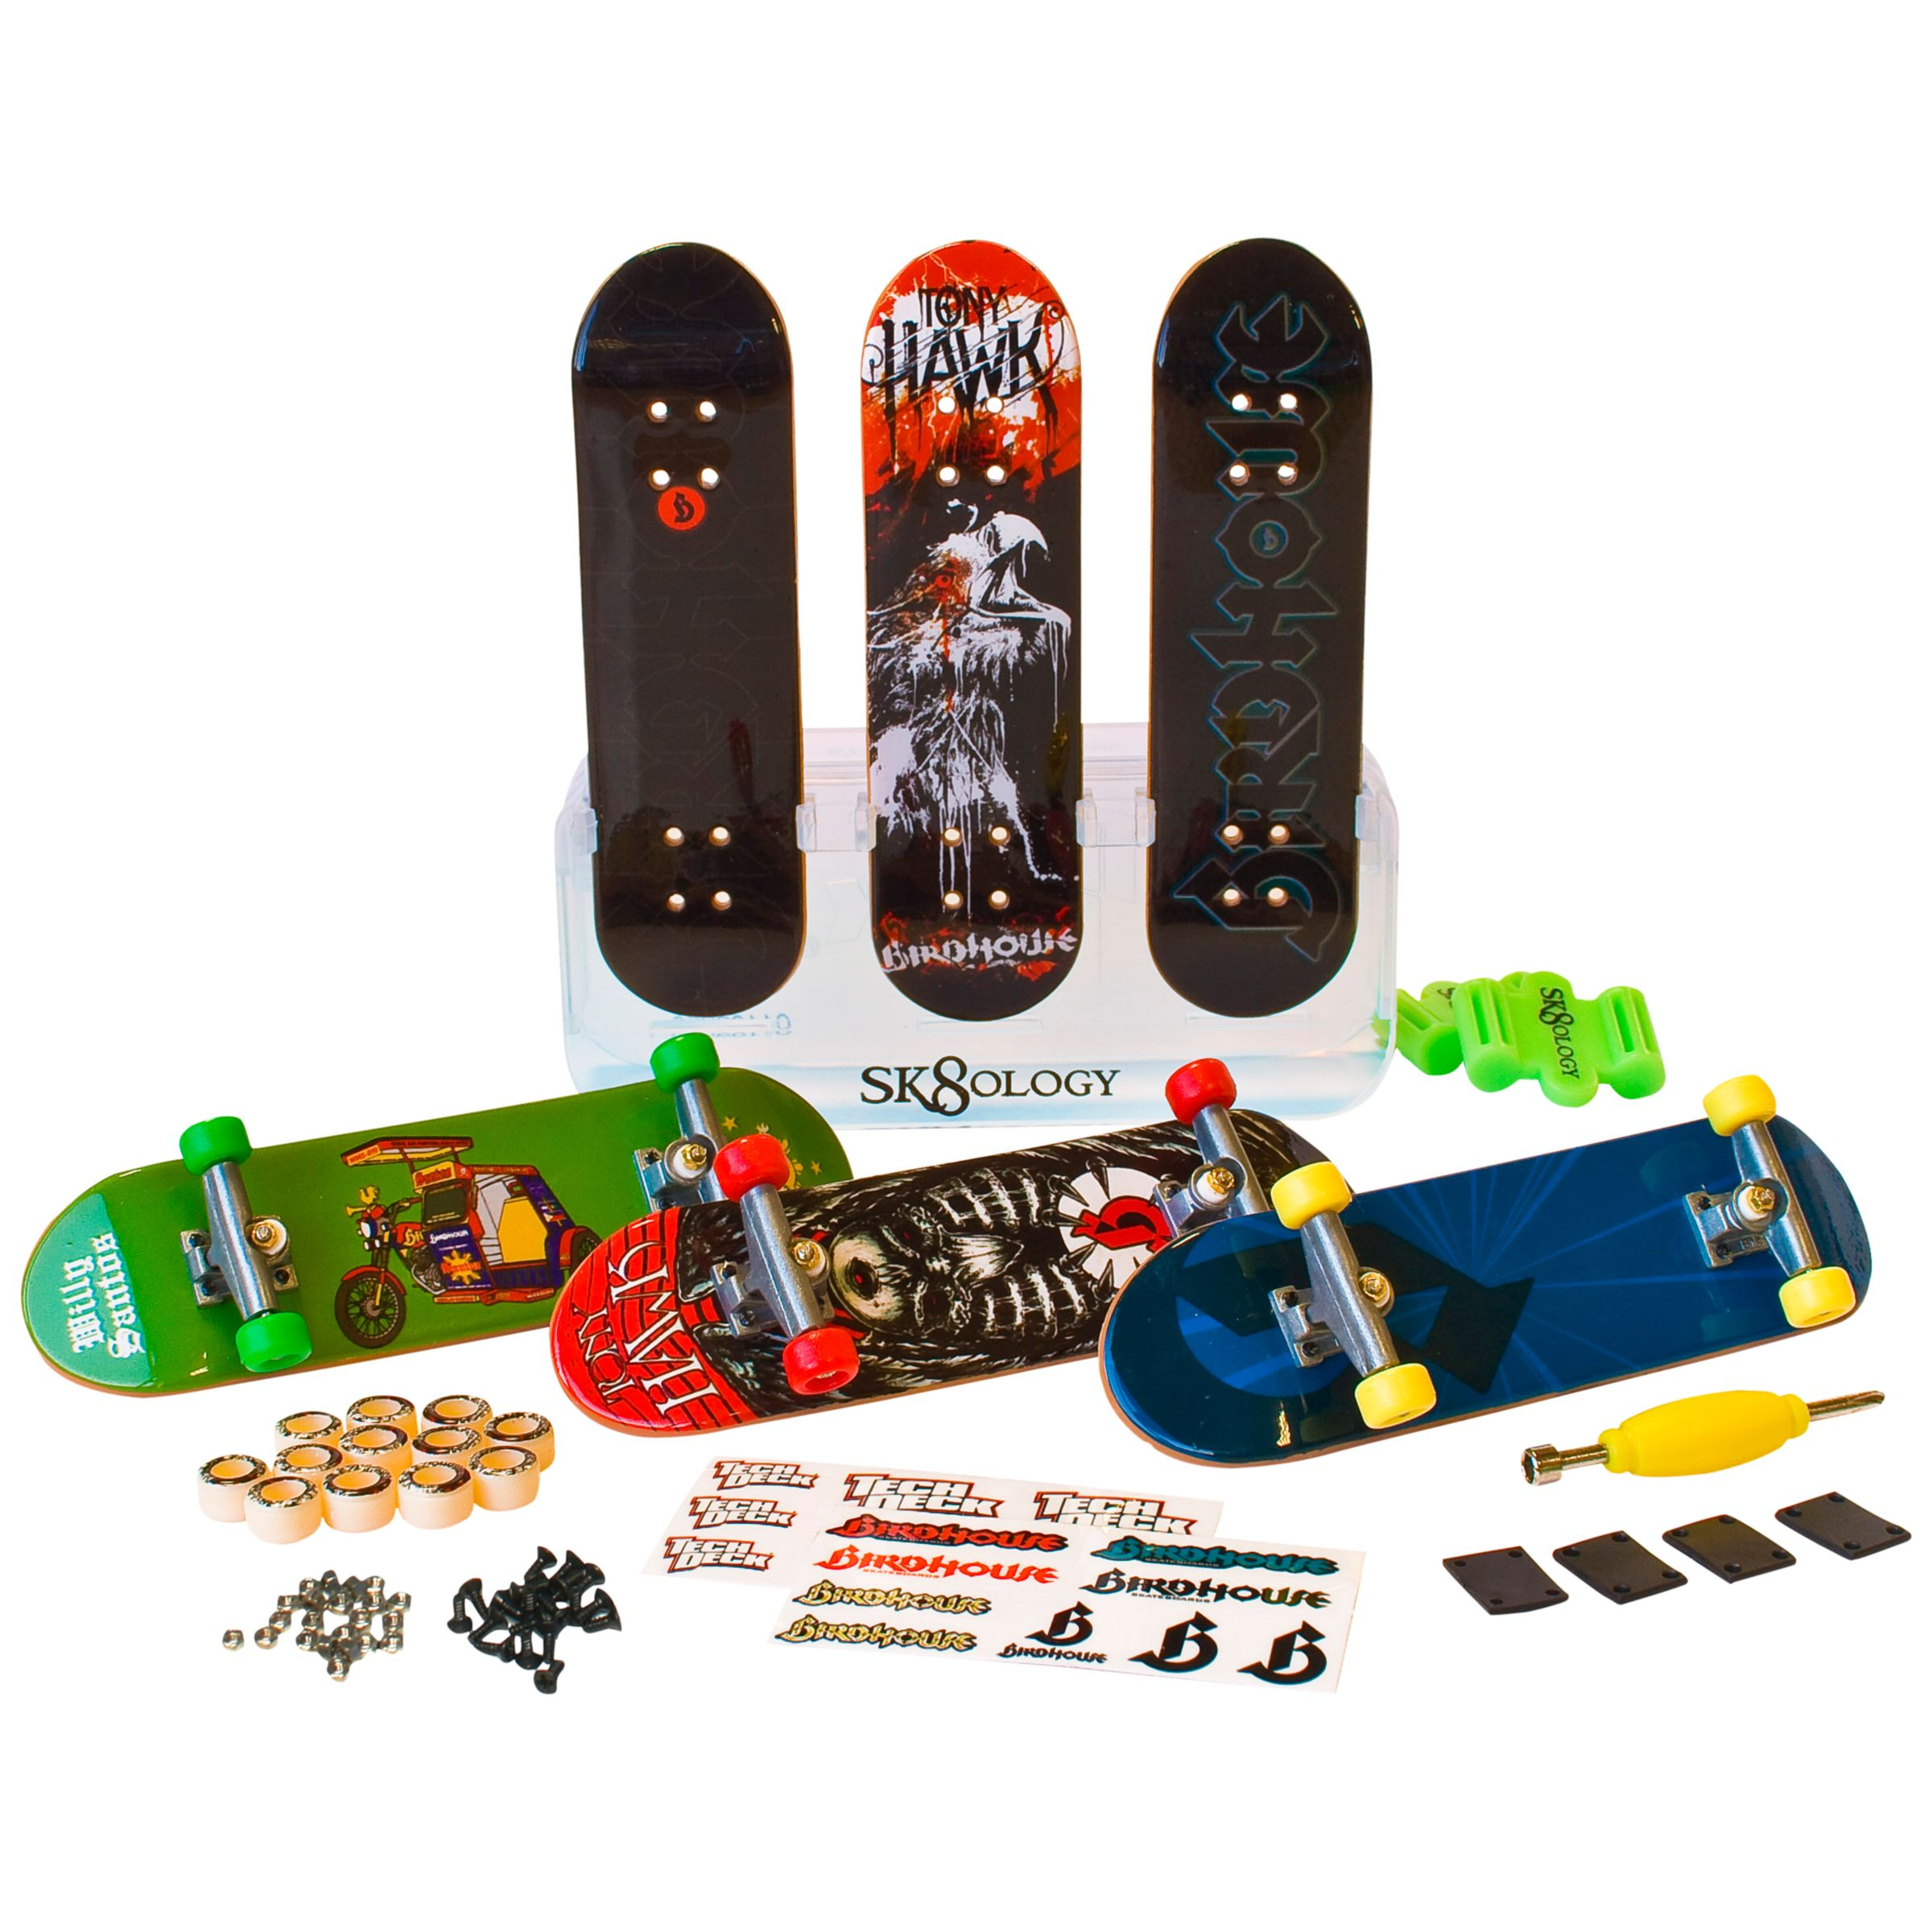 Tech Deck Sk8 Shop, Assorted